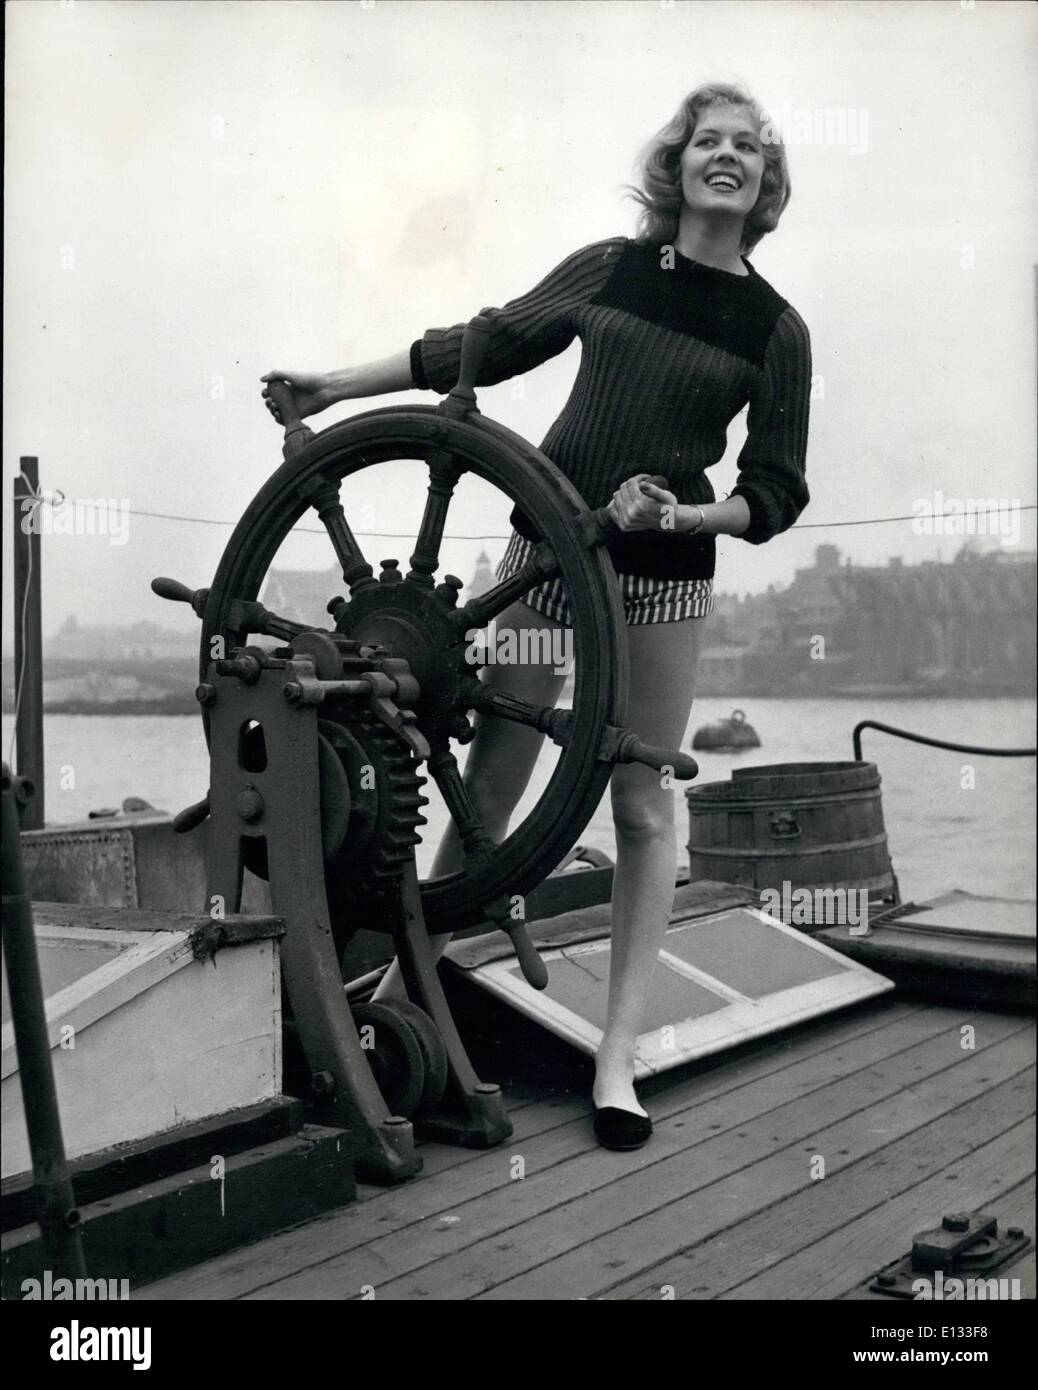 Feb. 26, 2012 - Just in case she gets the wanderlust, Yvonne Agard puts in a bit of practise at the ship's wheel. - Stock Image